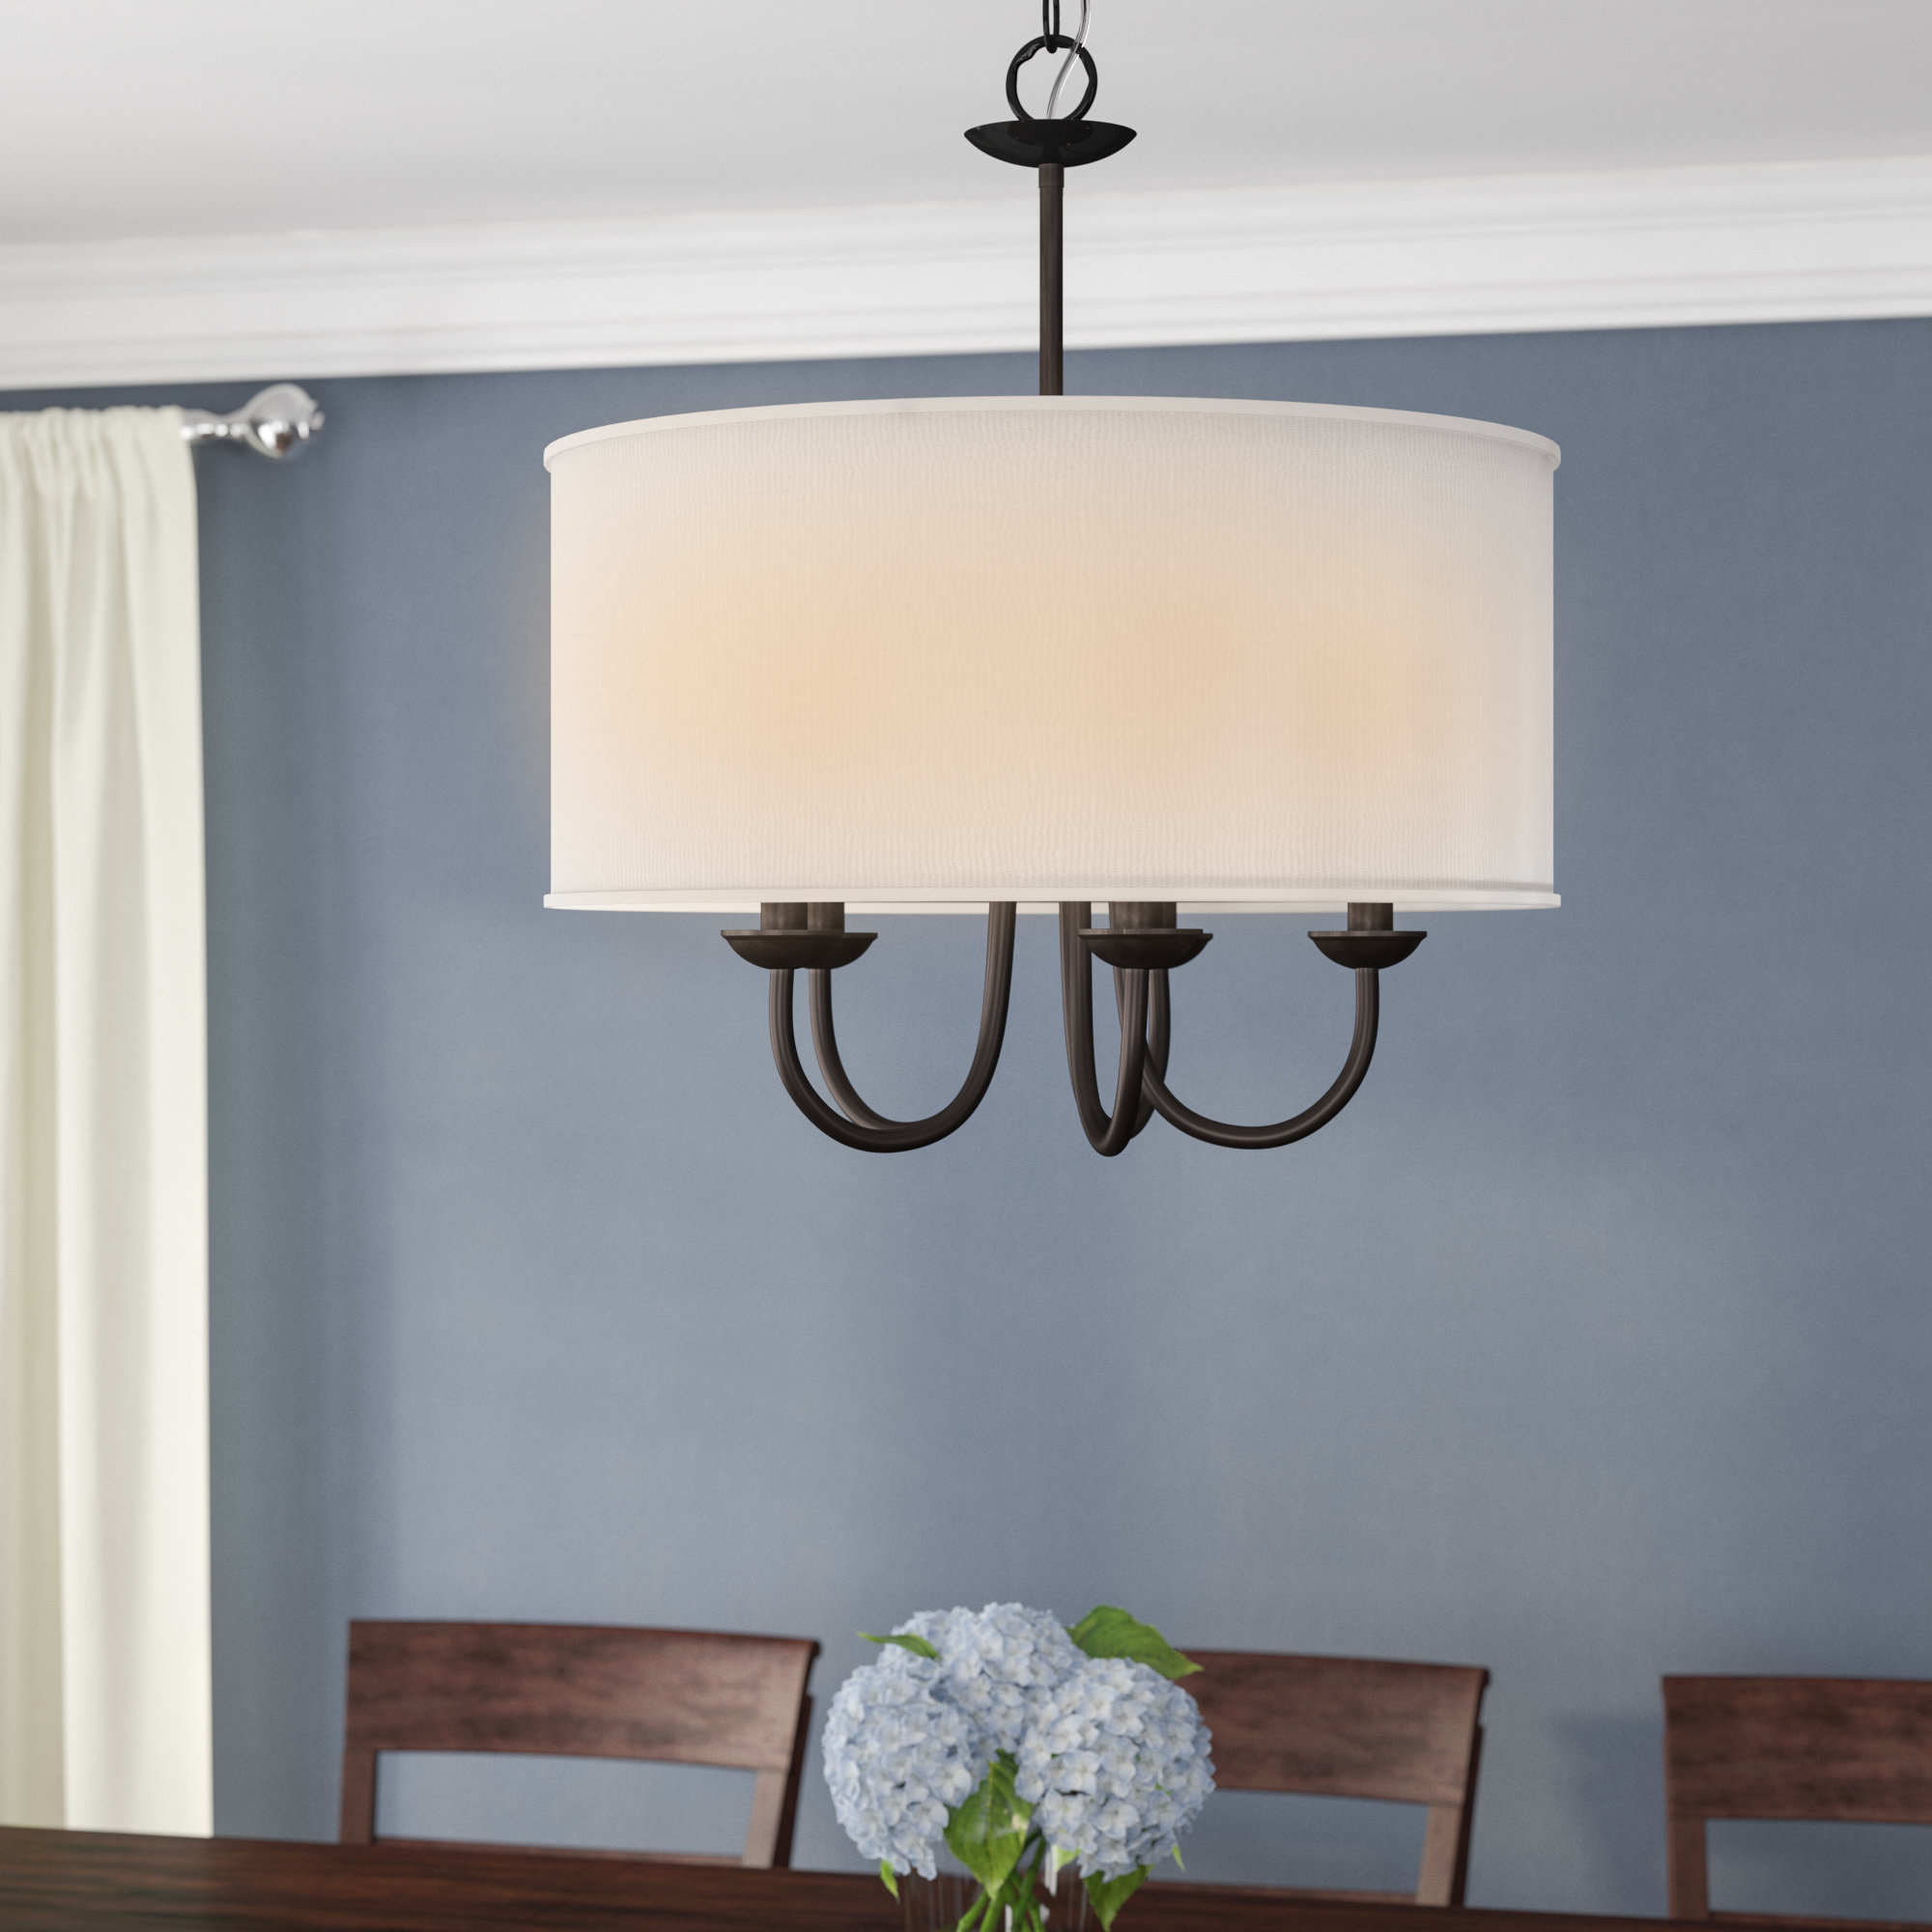 Sylvestre 5 Light Drum Chandelier For Most Recently Released Wadlington 5 Light Drum Chandeliers (View 11 of 20)